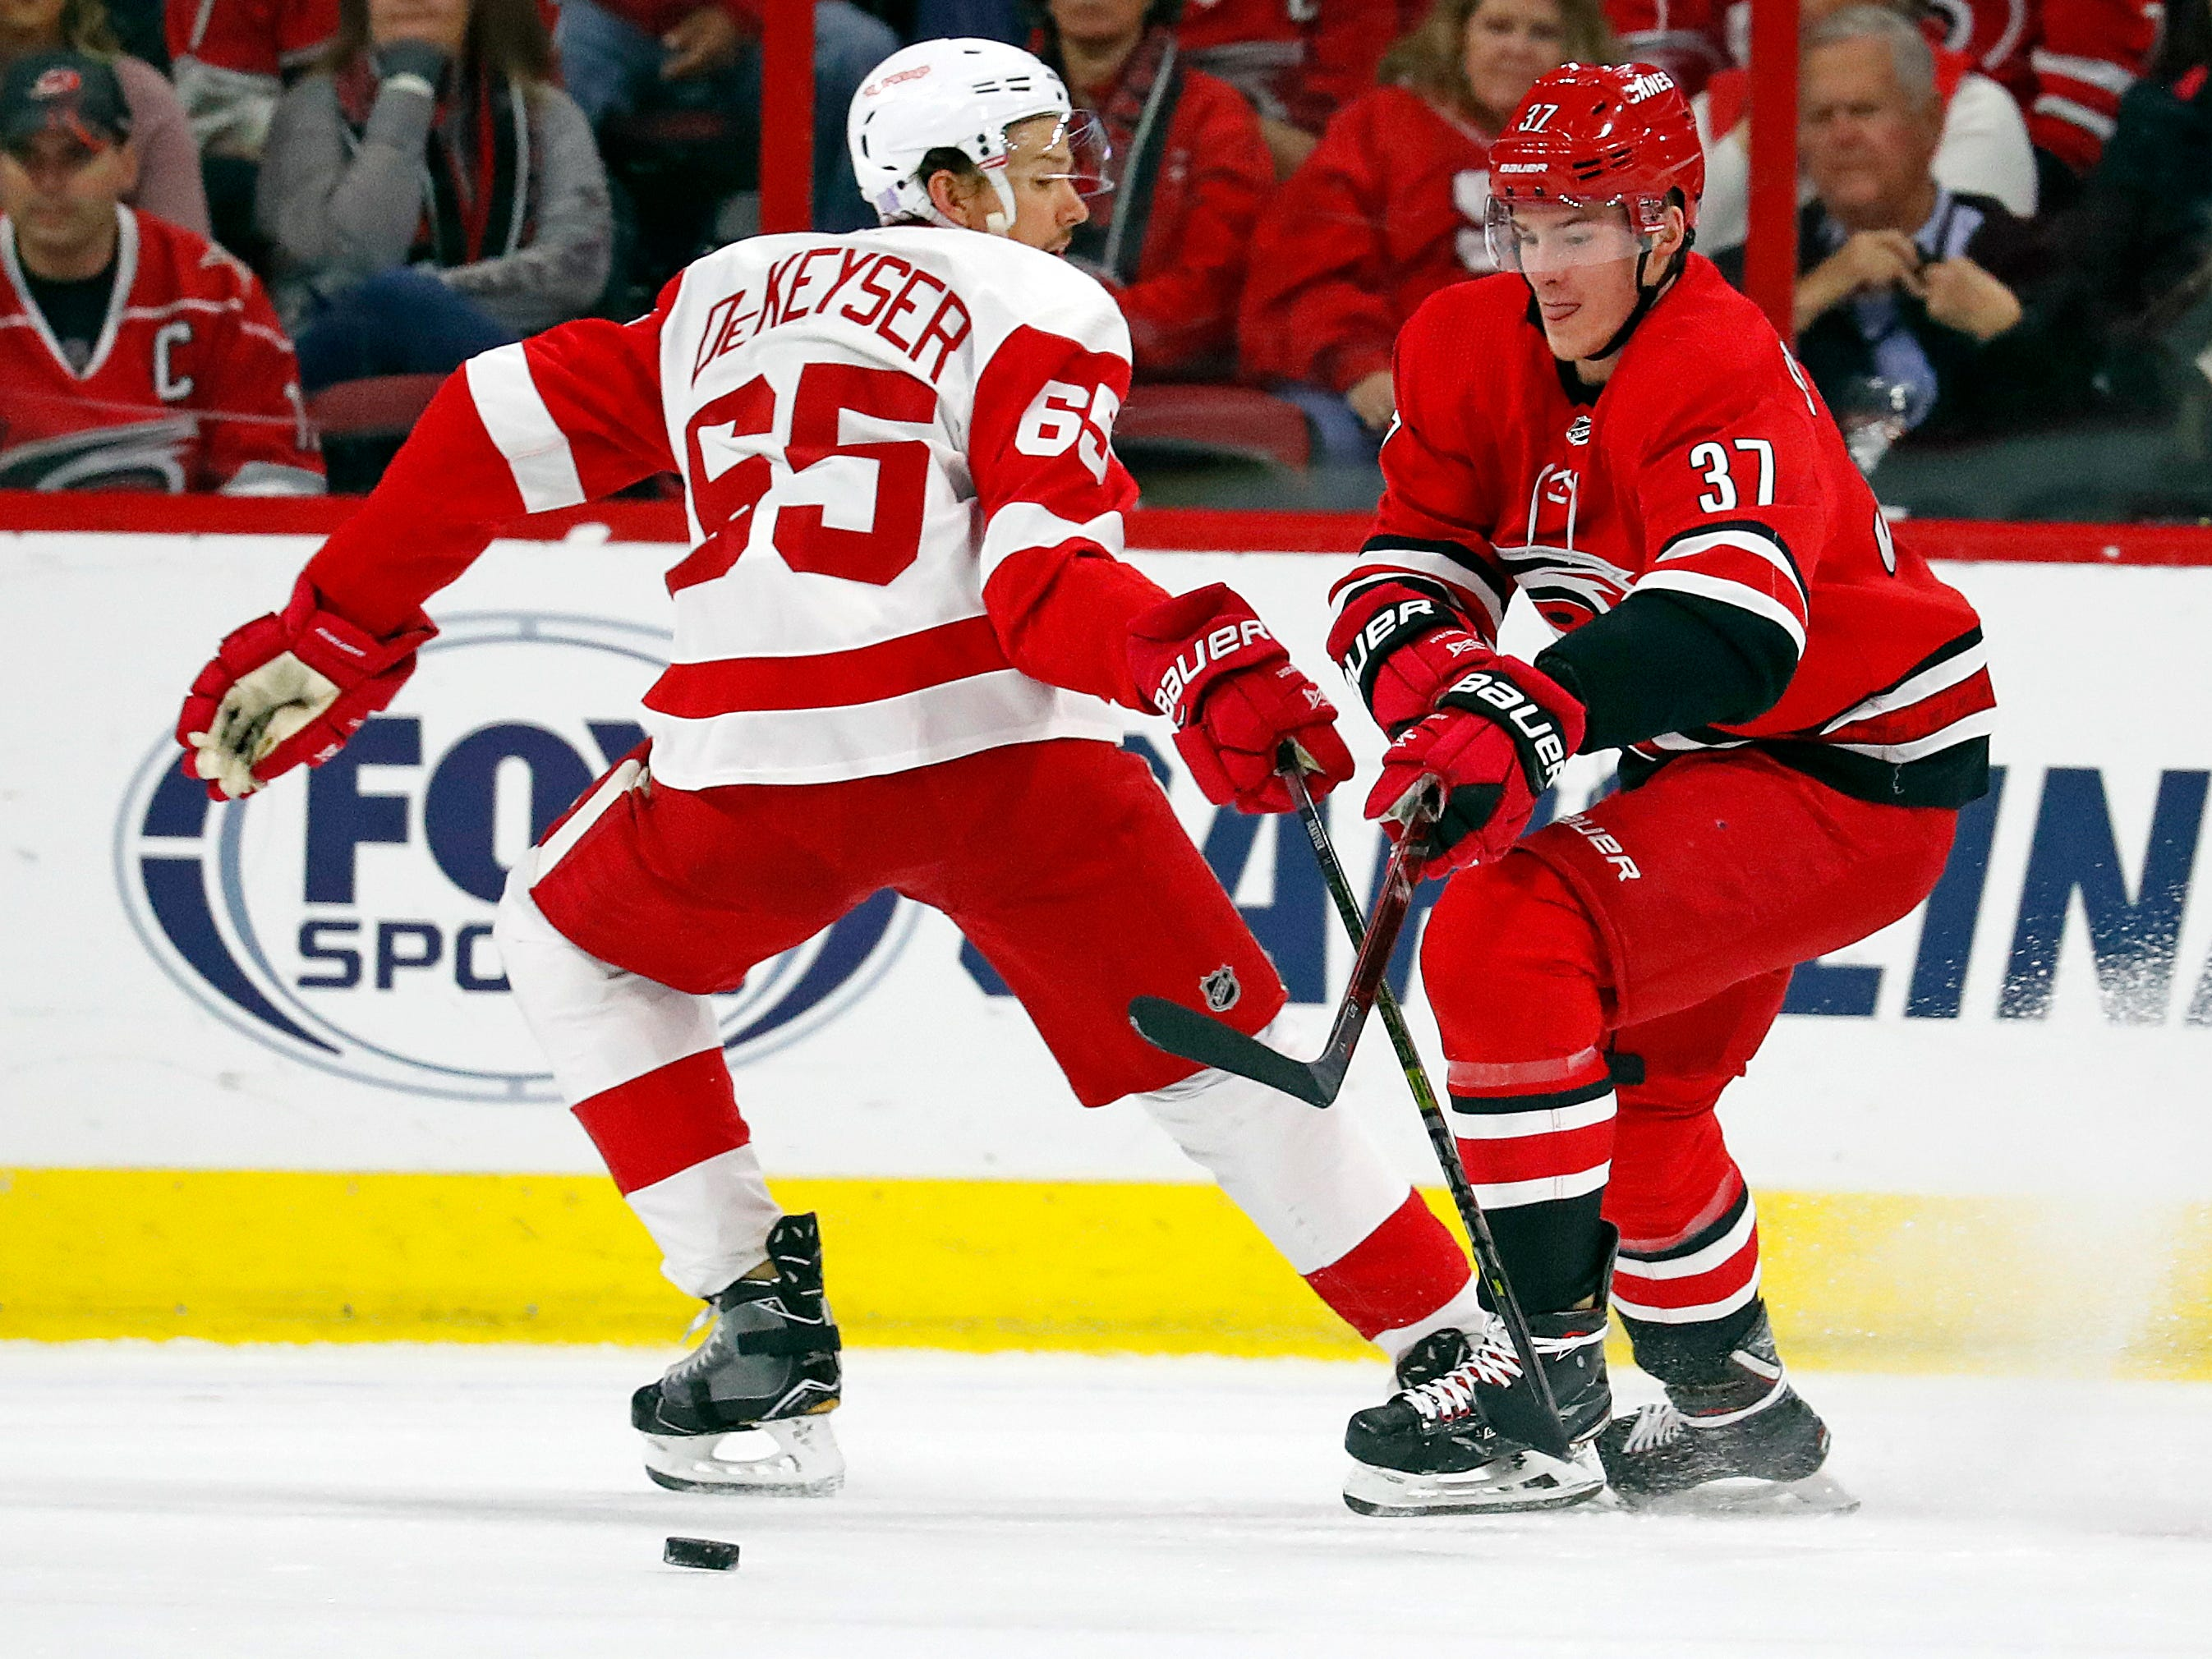 Carolina Hurricanes' Andrei Svechnikov (37) works against Detroit Red Wings' Danny DeKeyser (65) during the first period.